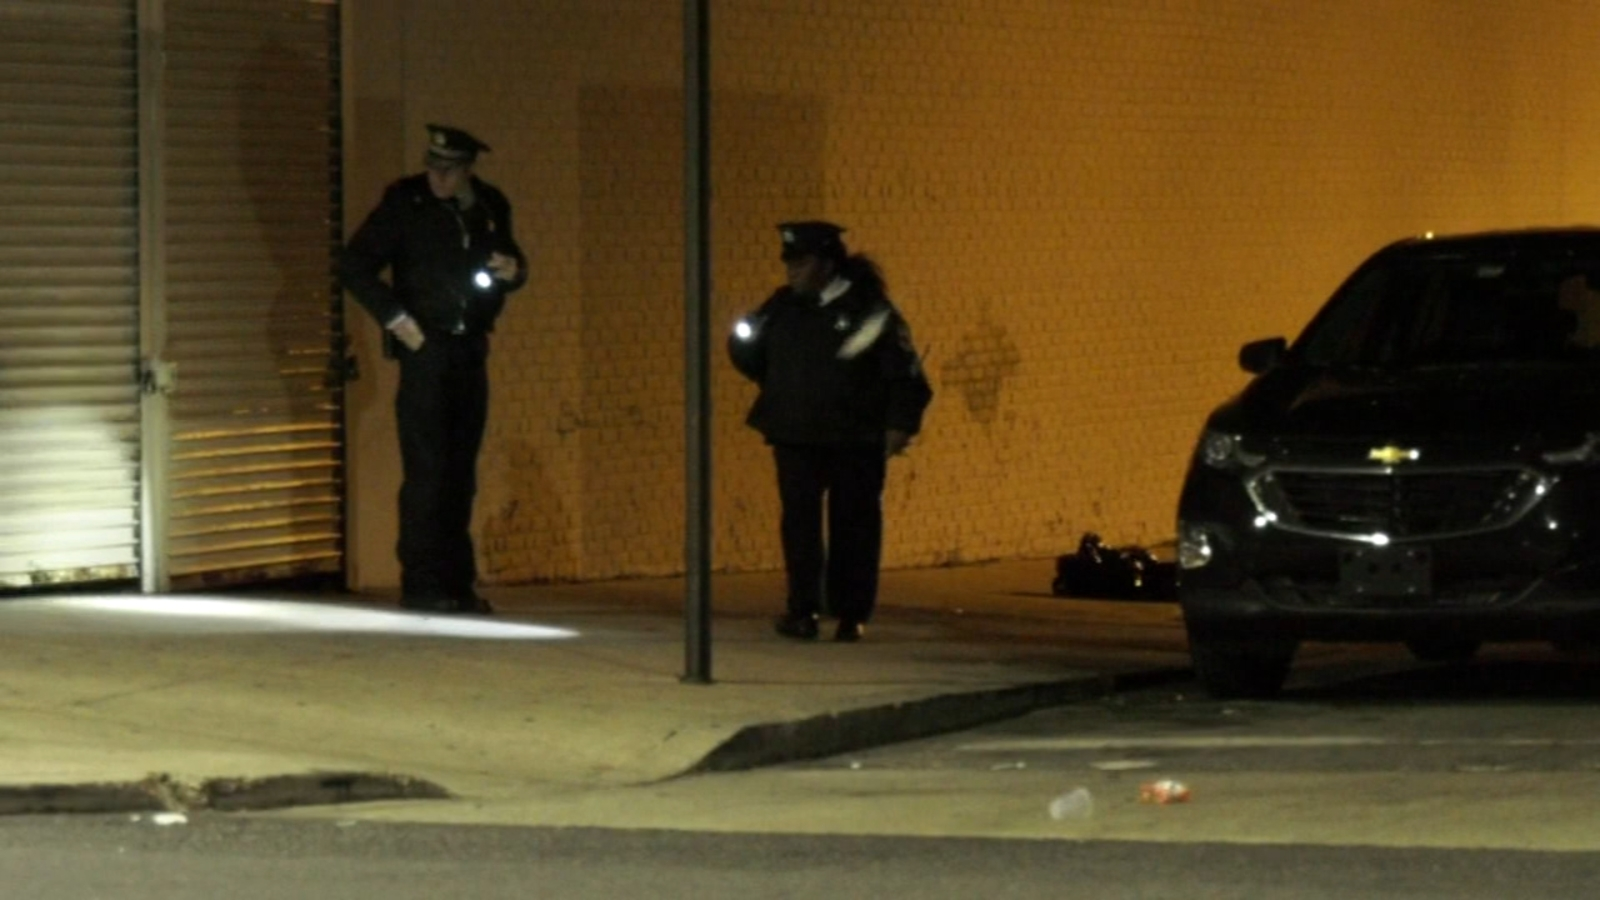 Man shot during robbery attempt in Mantua, police say